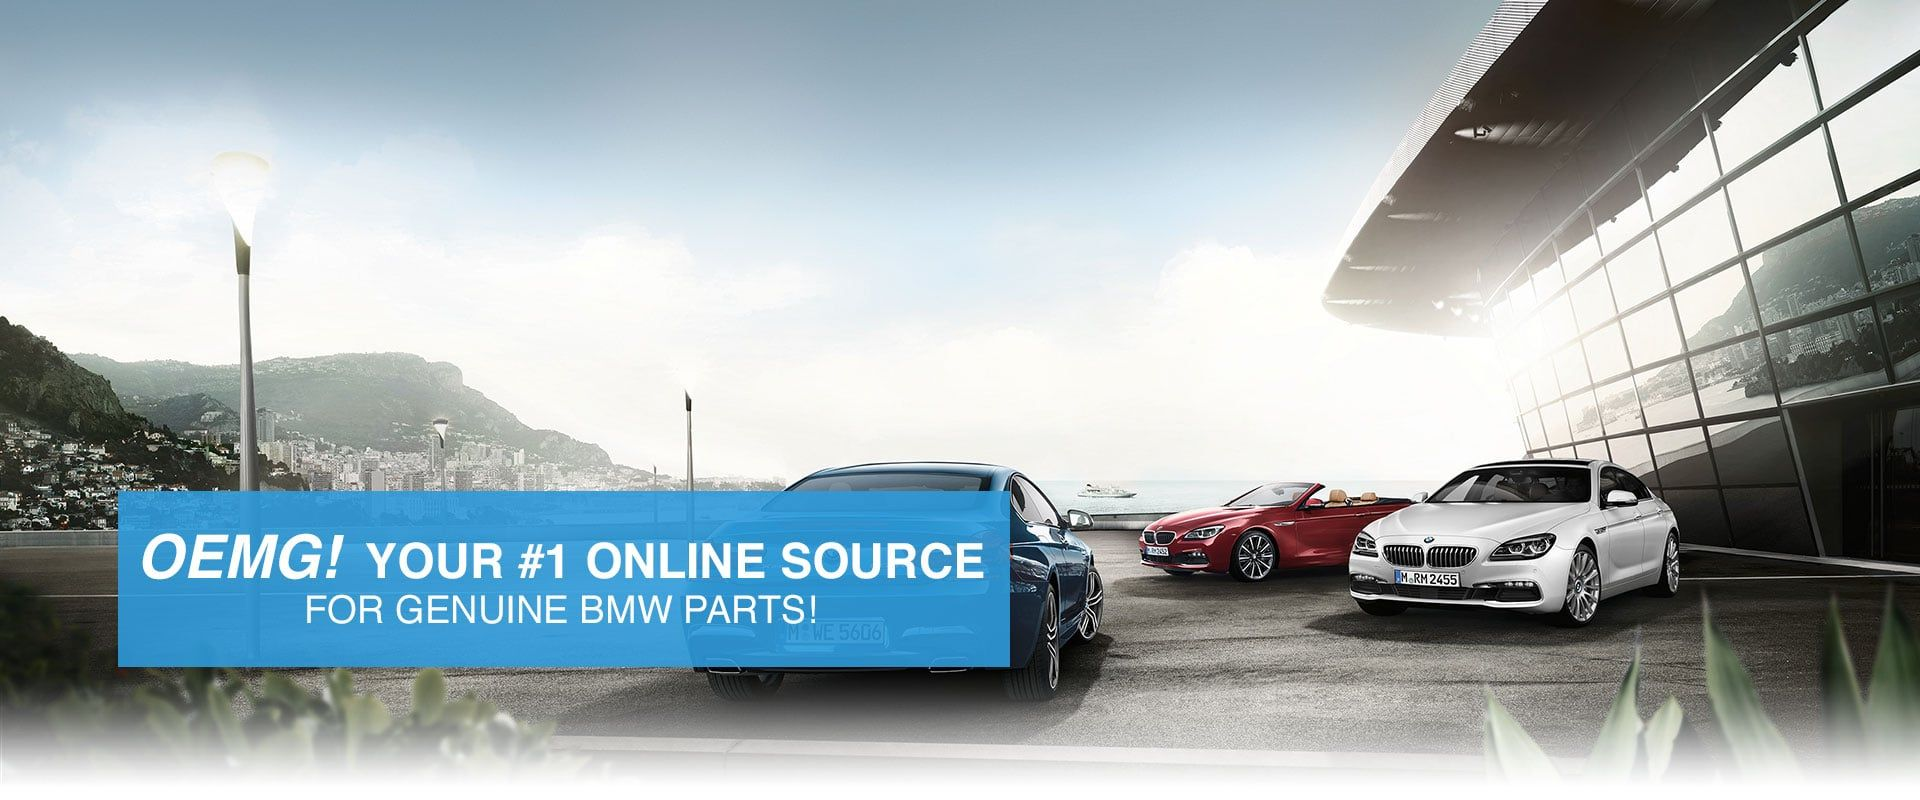 Shop Genuine Oem Bmw Parts And Accessories Getbmwparts Md E53 Amp Wiring Diagram